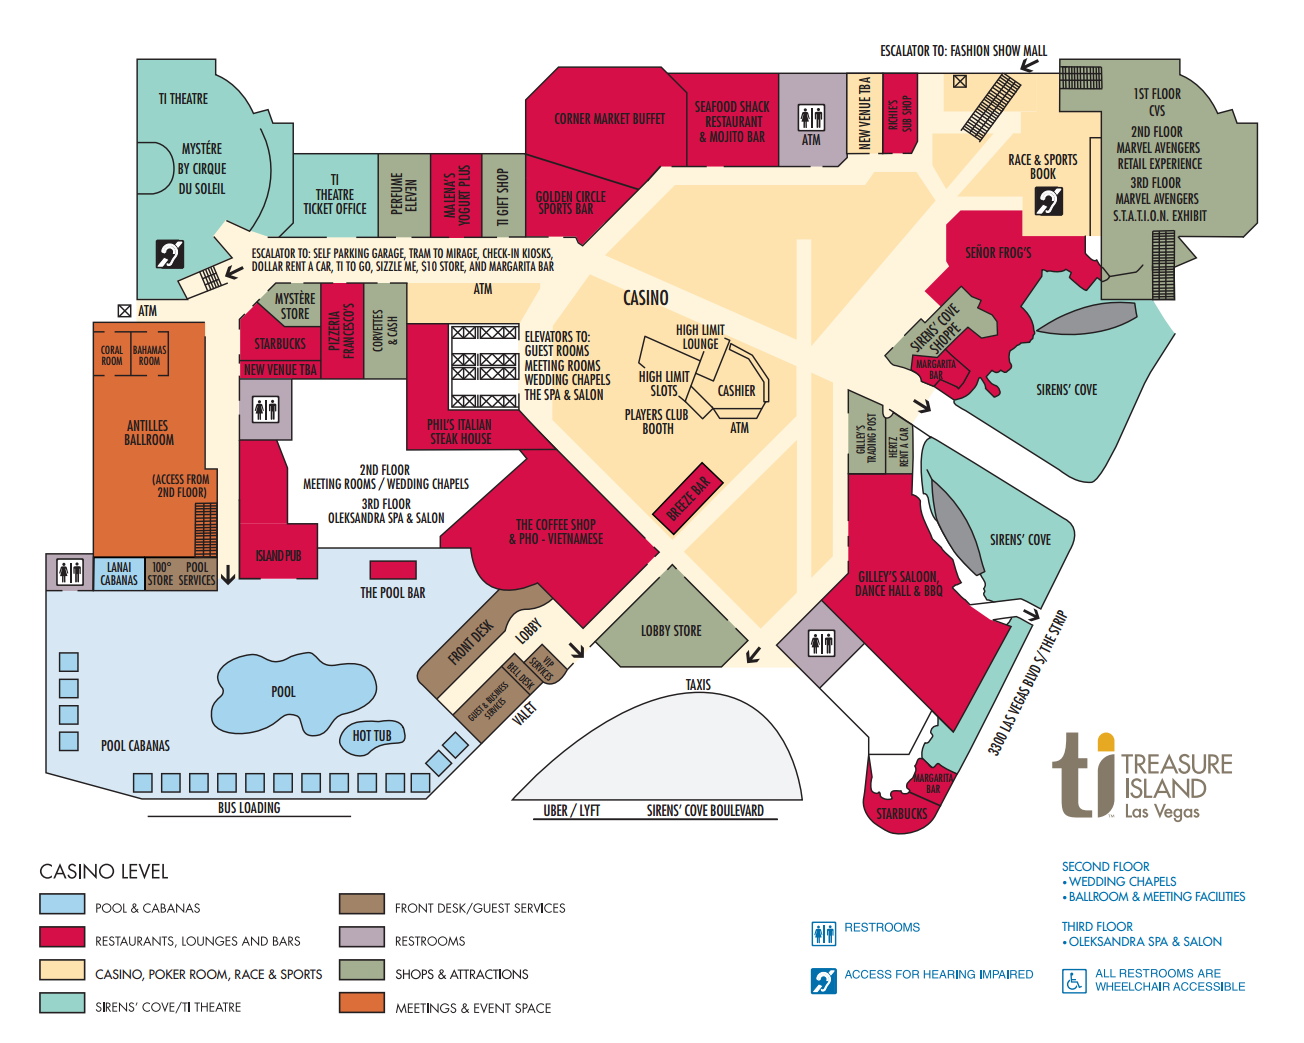 Venetian Las Vegas Map TI Hotel Property Map Treasure Island Hotel and Casino, Las Vegas